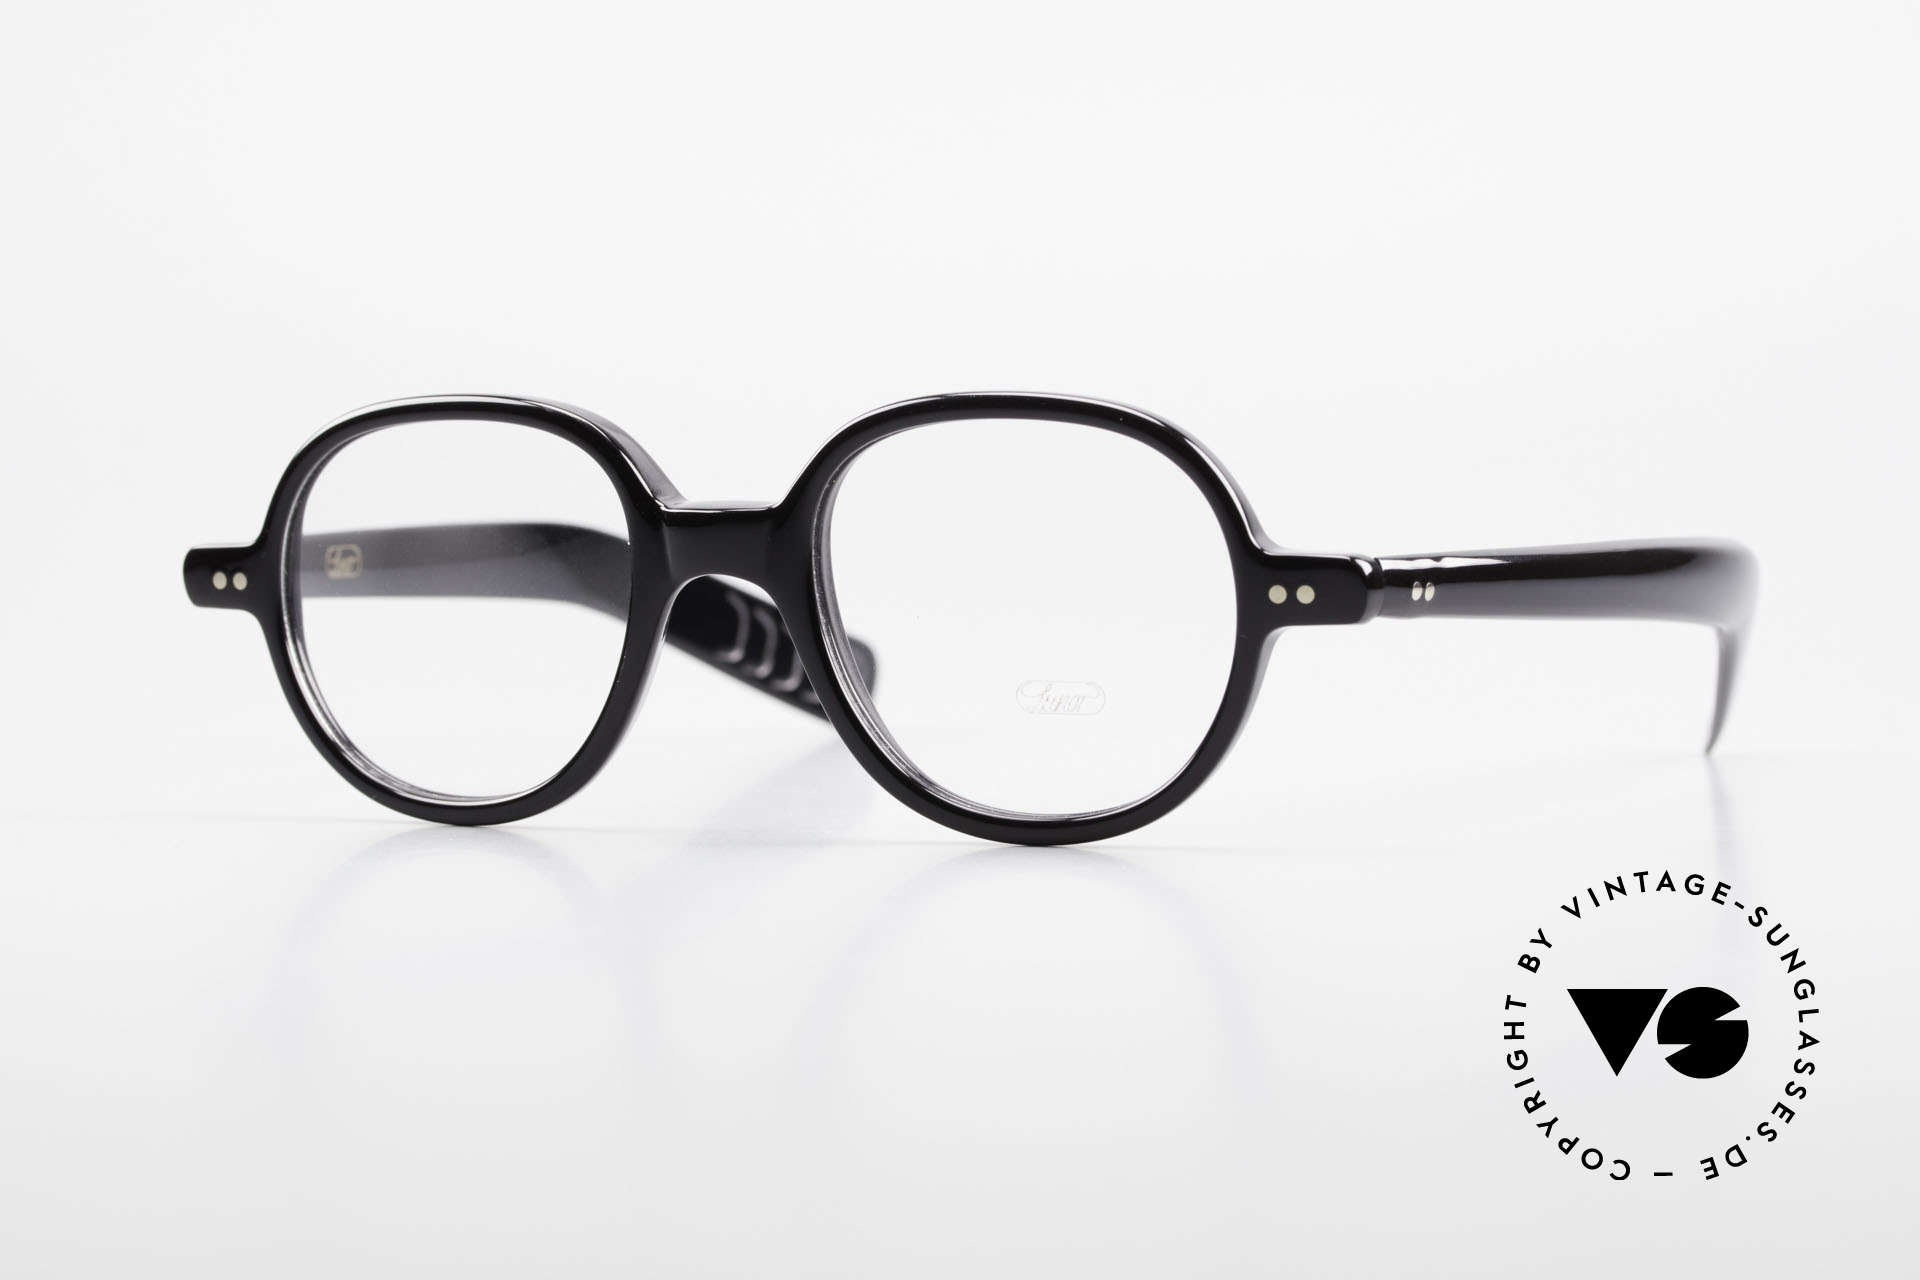 Lunor A50 Round Lunor Acetate Glasses, LUNOR glasses, model 50 from the Acetate collection, Made for Men and Women